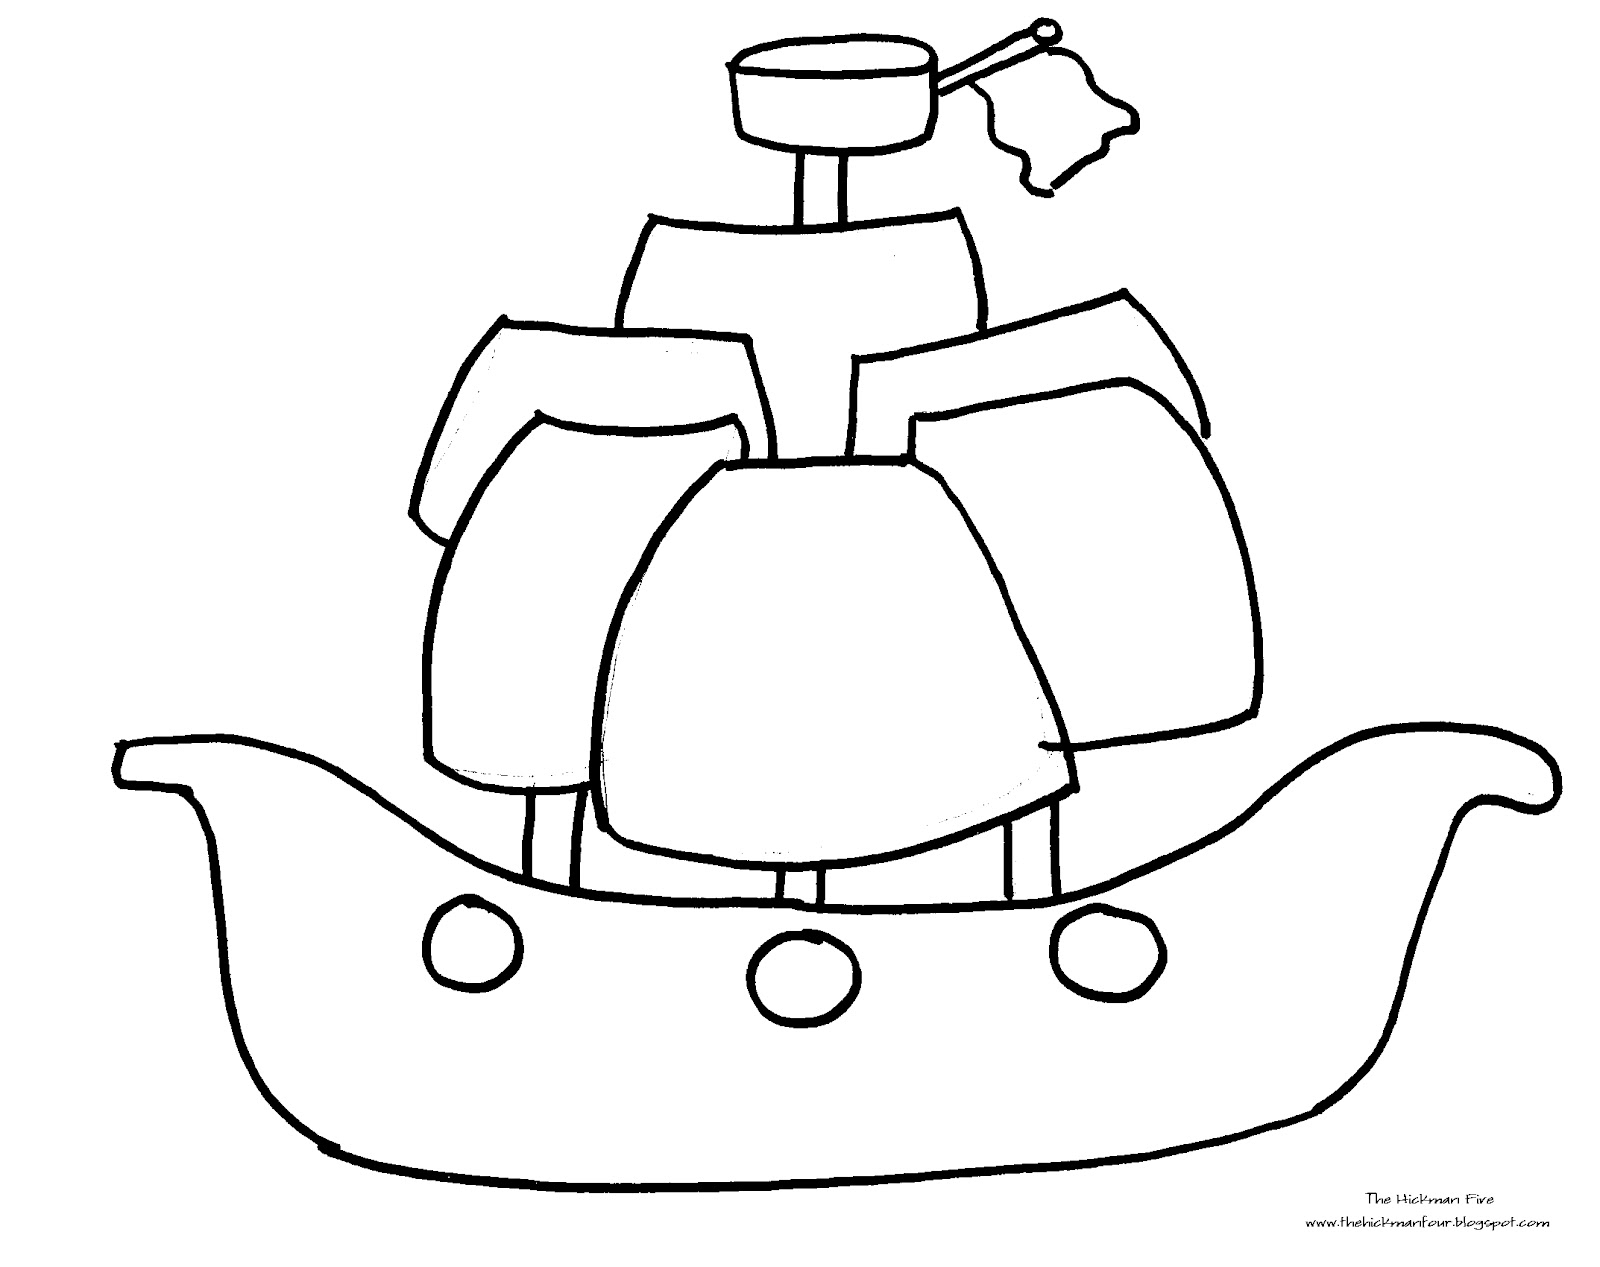 pirate ships colouring pages page 2